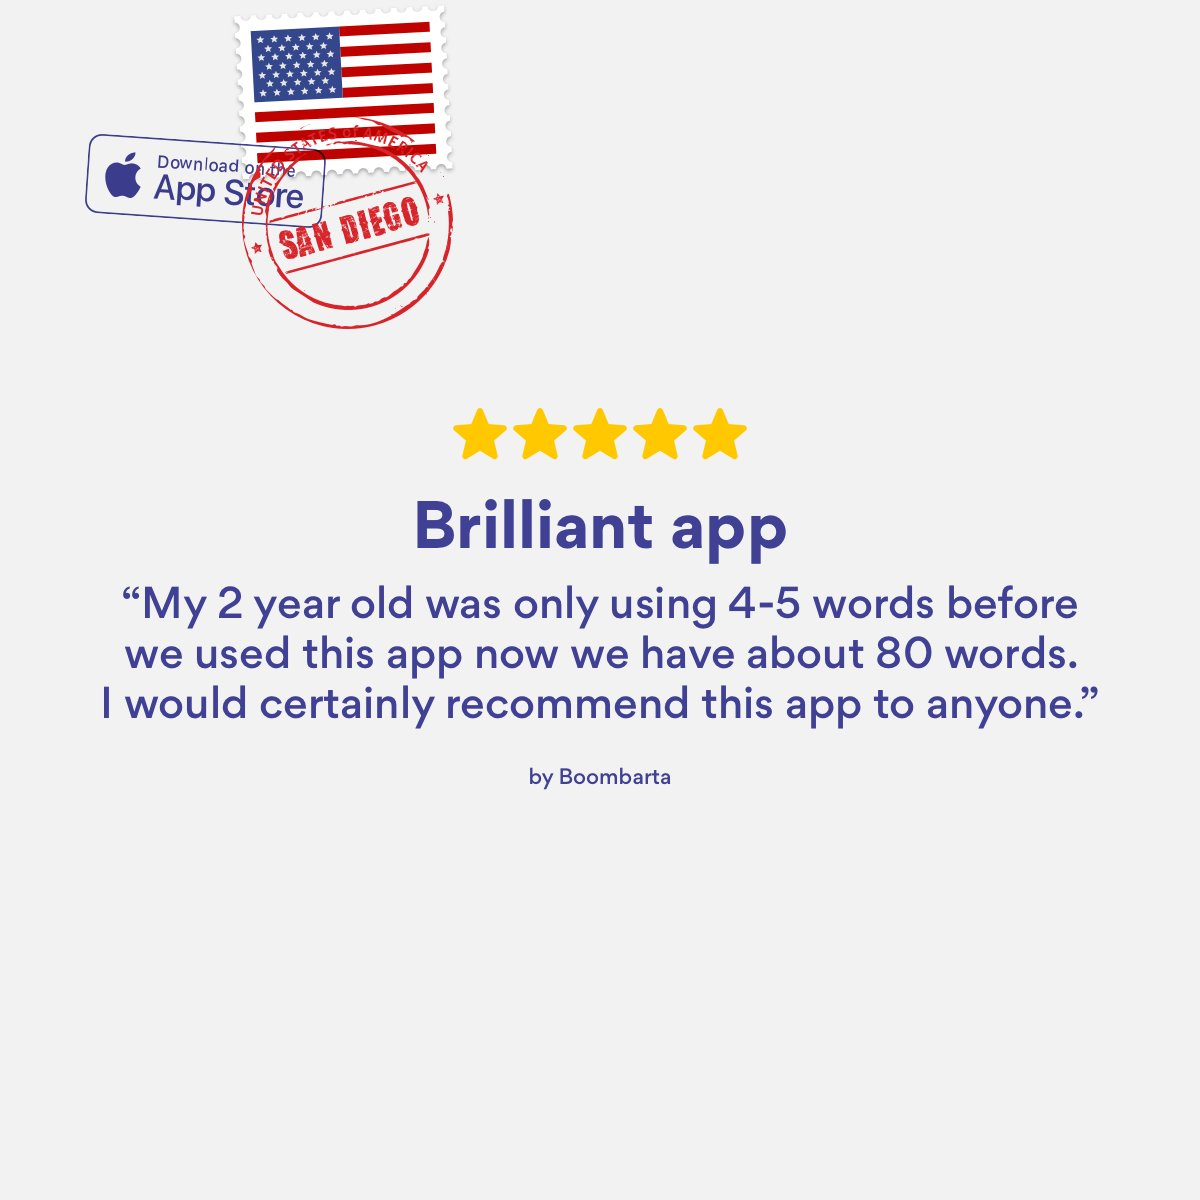 America's Finest City had some mighty fine things to say about our app. We're so glad to helping user Boombarta's 2-year old build their vocabulary!  Give a big tweet if you're from San Diego, too! Oh, and send some of that famous sunshine our way 😉